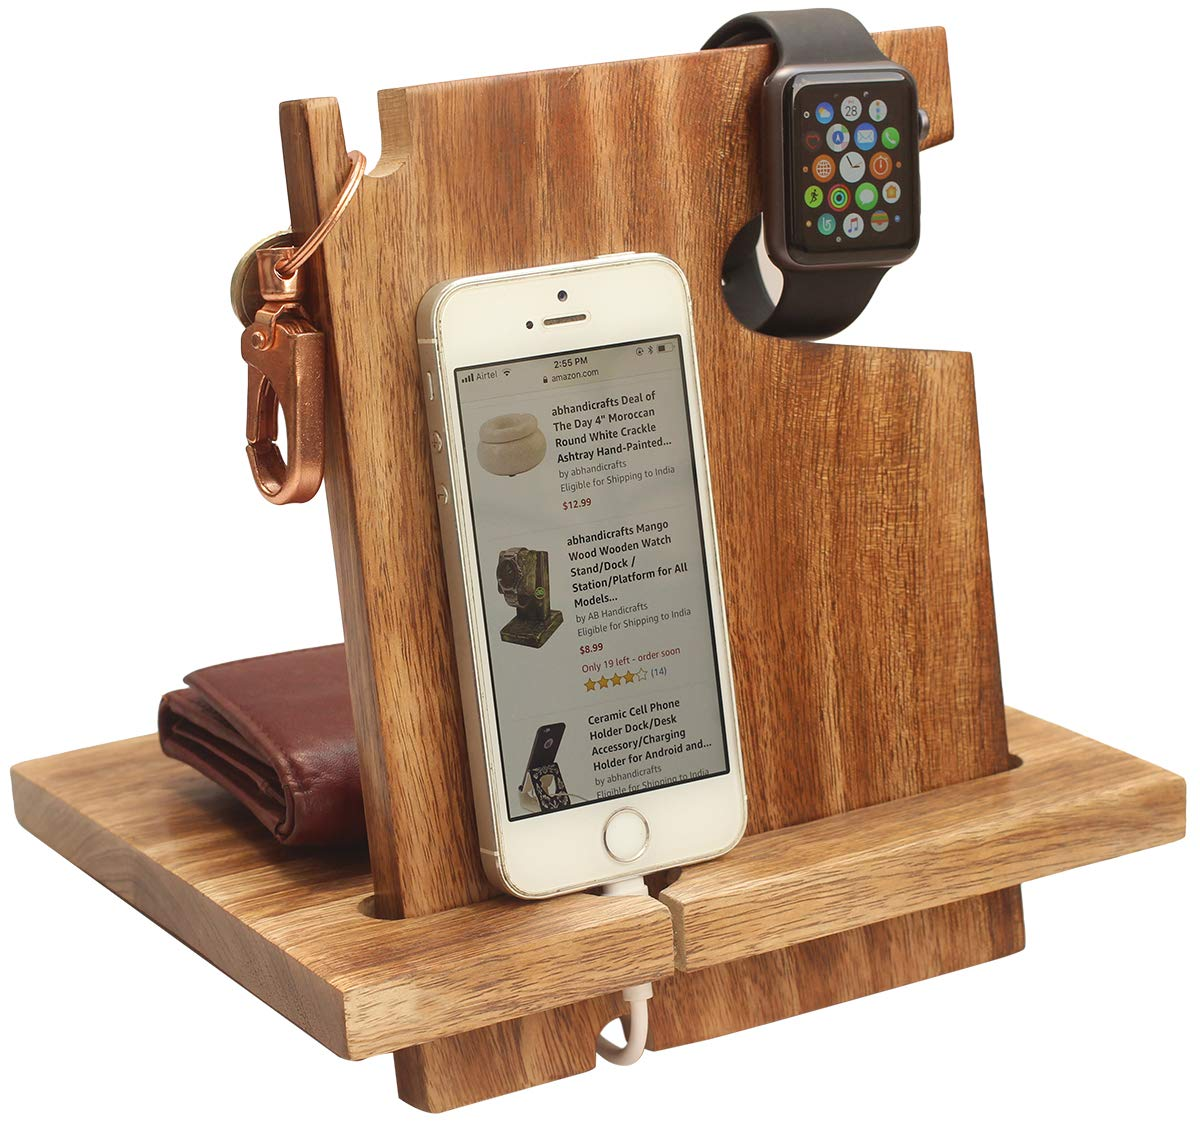 AB Handictafts - Mango Wooden Android Docking Station, 50th Anniversary Gifts for Couple , Funny Fathers Day Gifts, i-Phone 6s plus, 6s, 6 plus, 6, 5, 5s by abhandicrafts